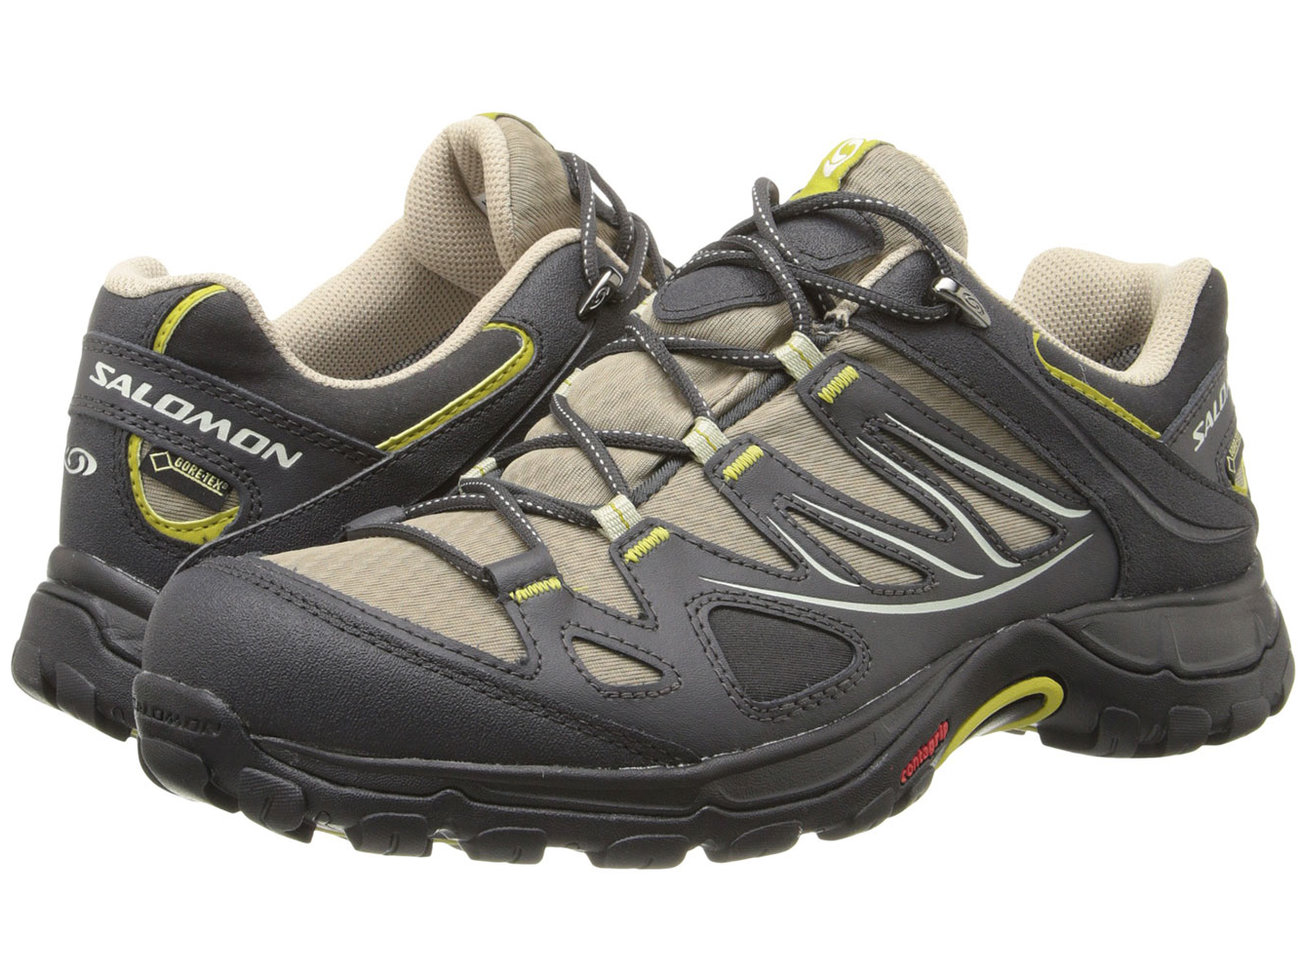 salomon-womens-eclipse-HIKINGBOOTS0816.jpg